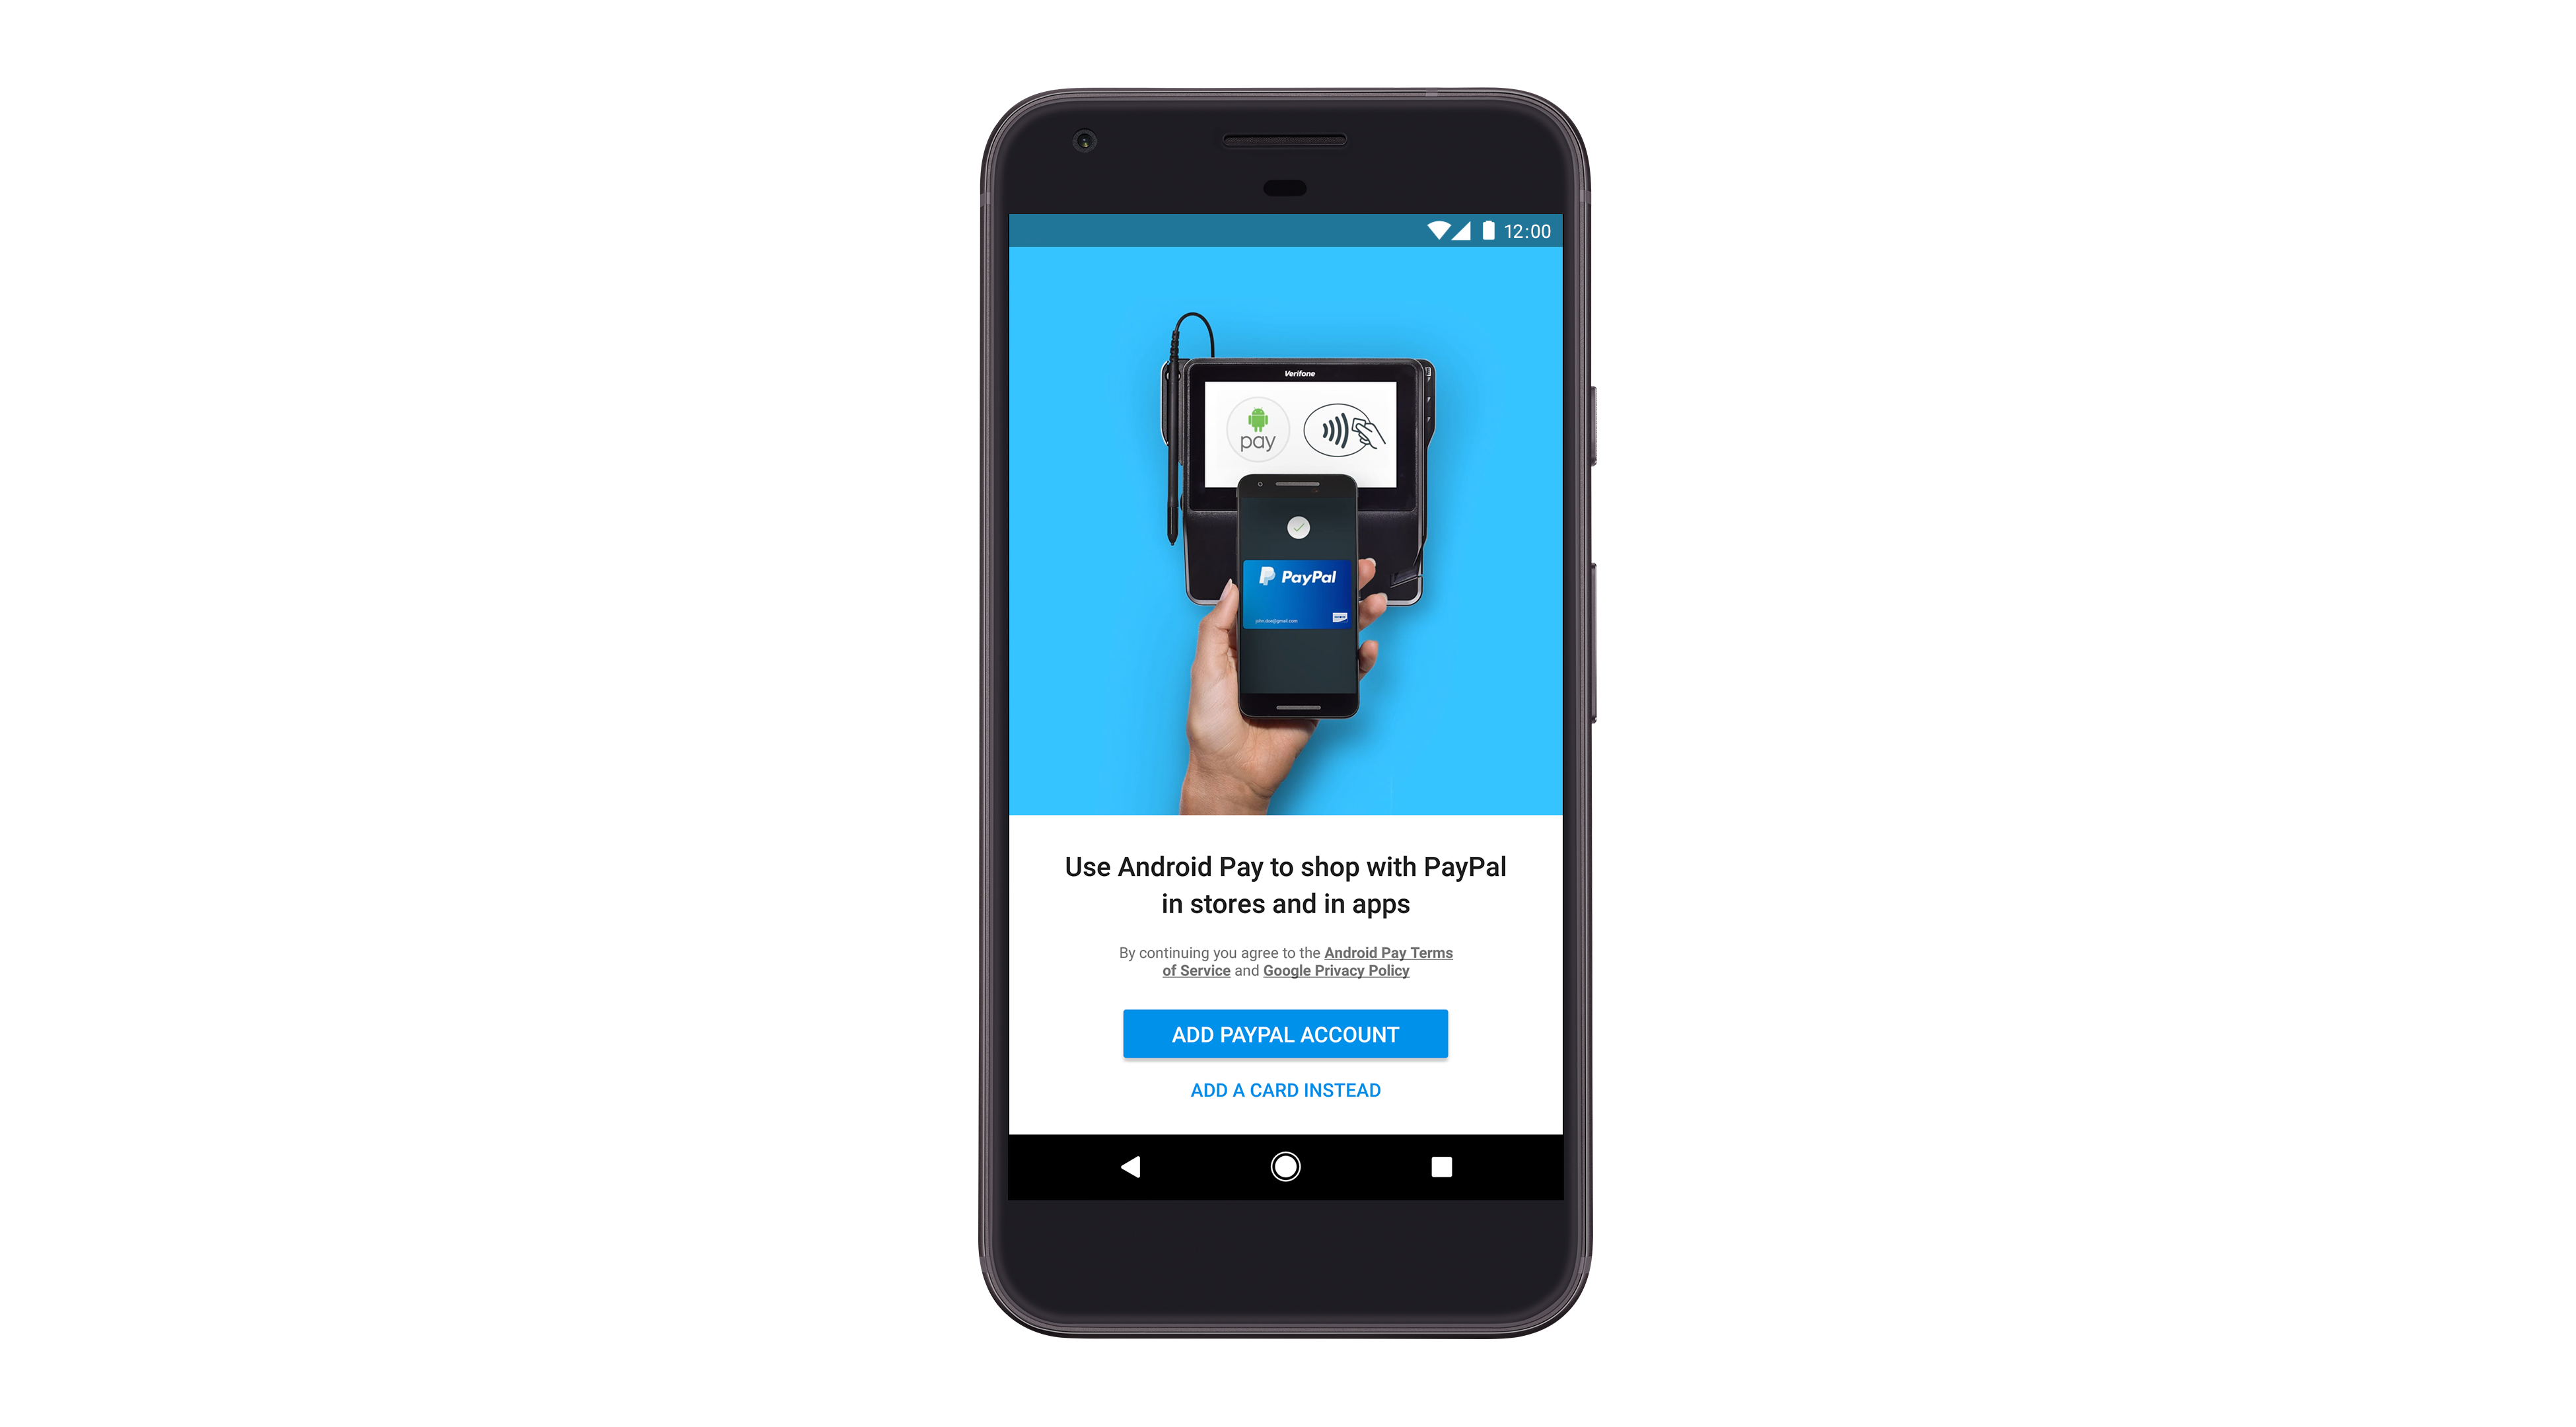 Google's Android Pay Now Working with PayPal